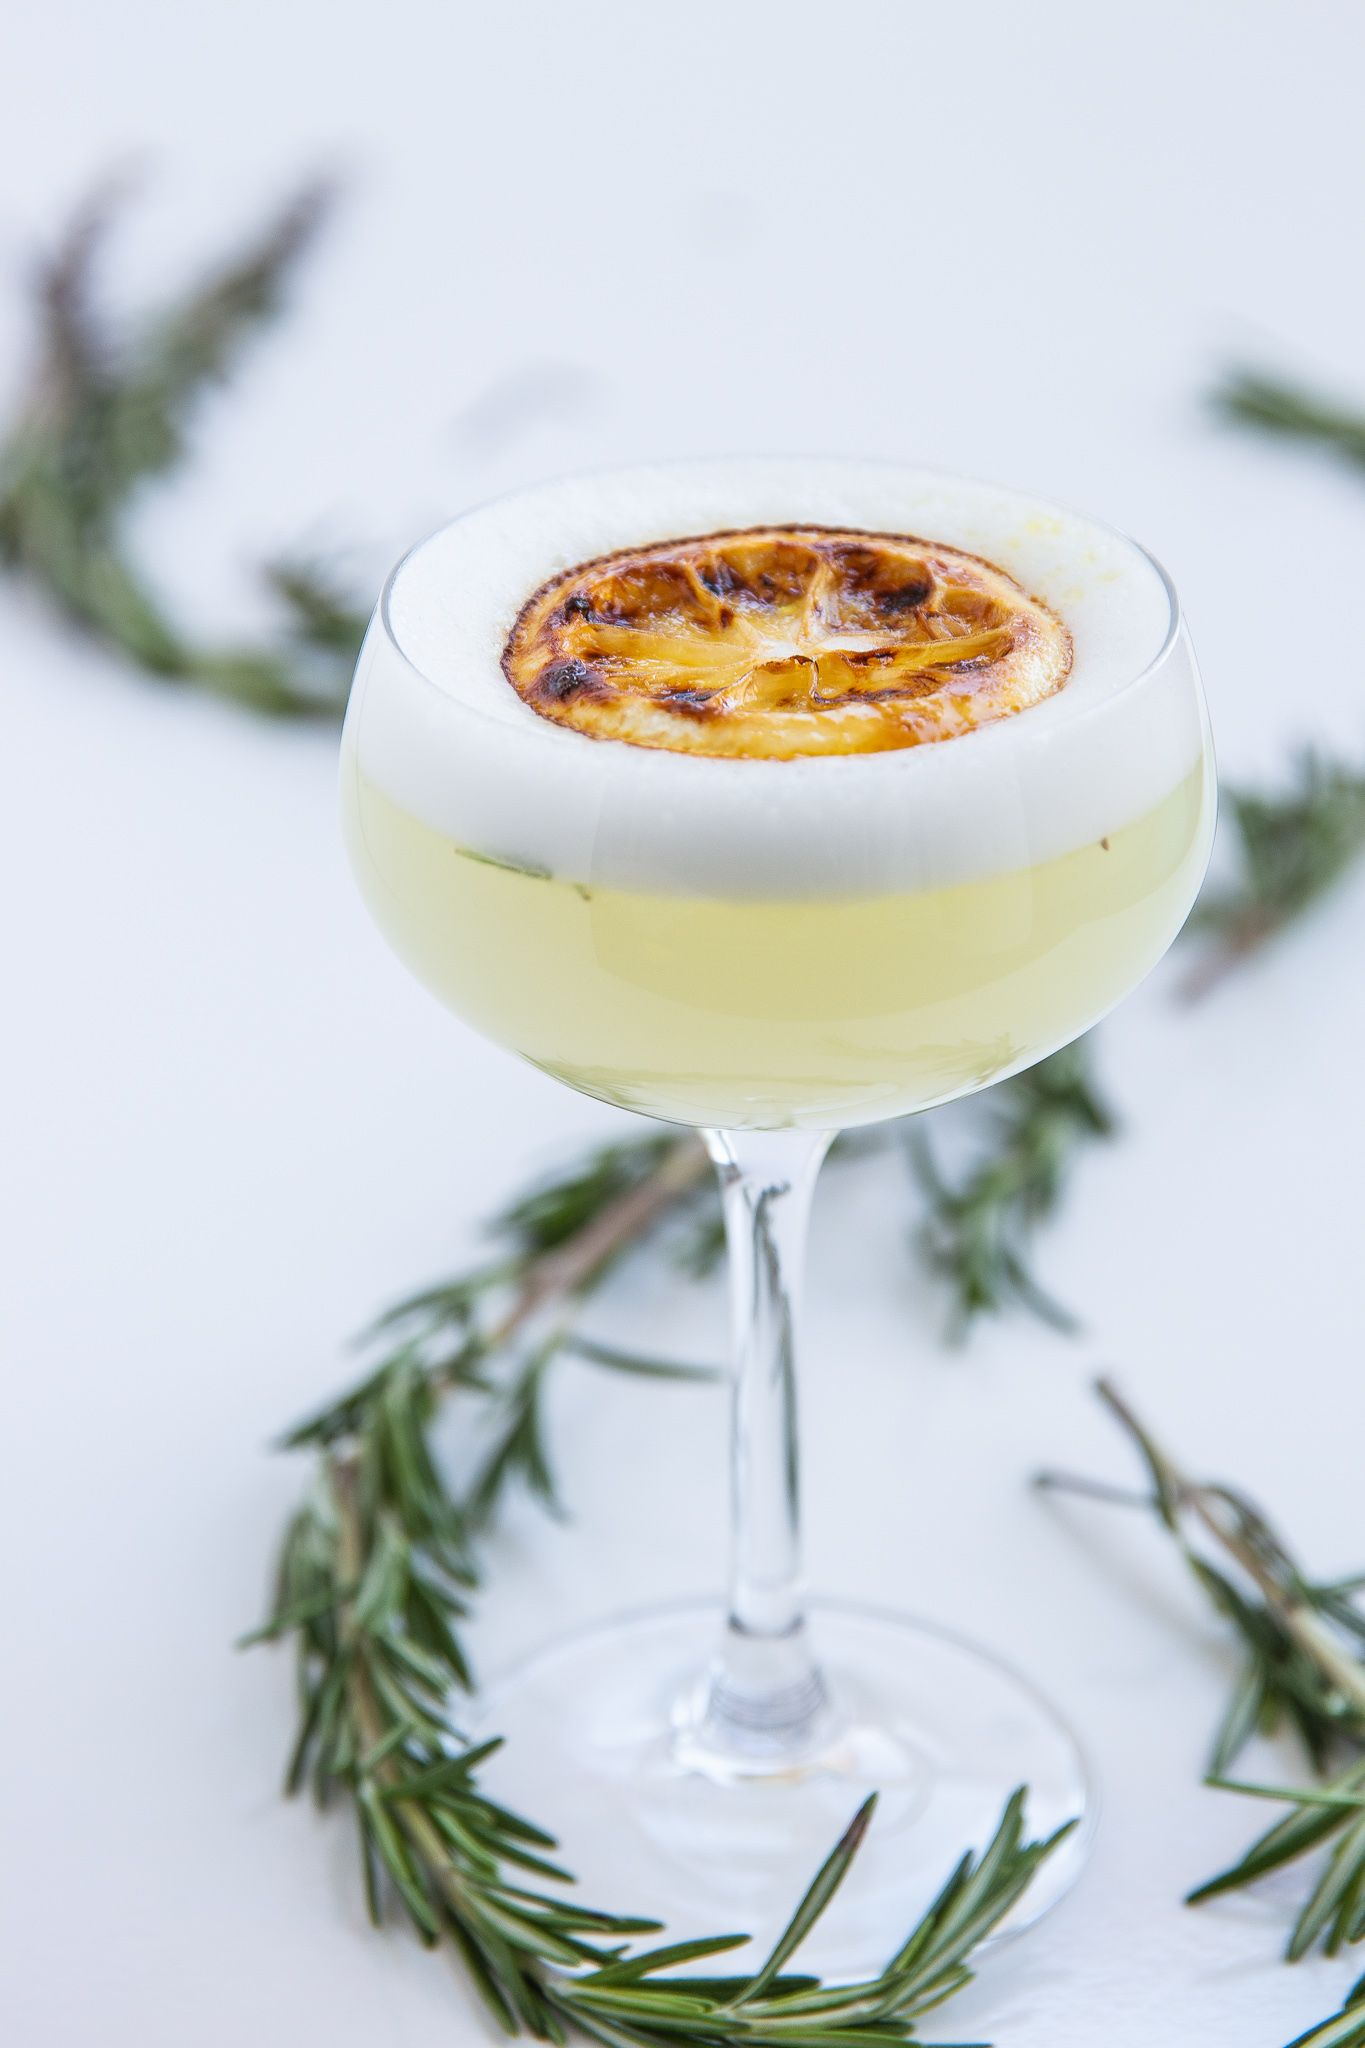 Rosemary Infused Sour with Brulee Lemon